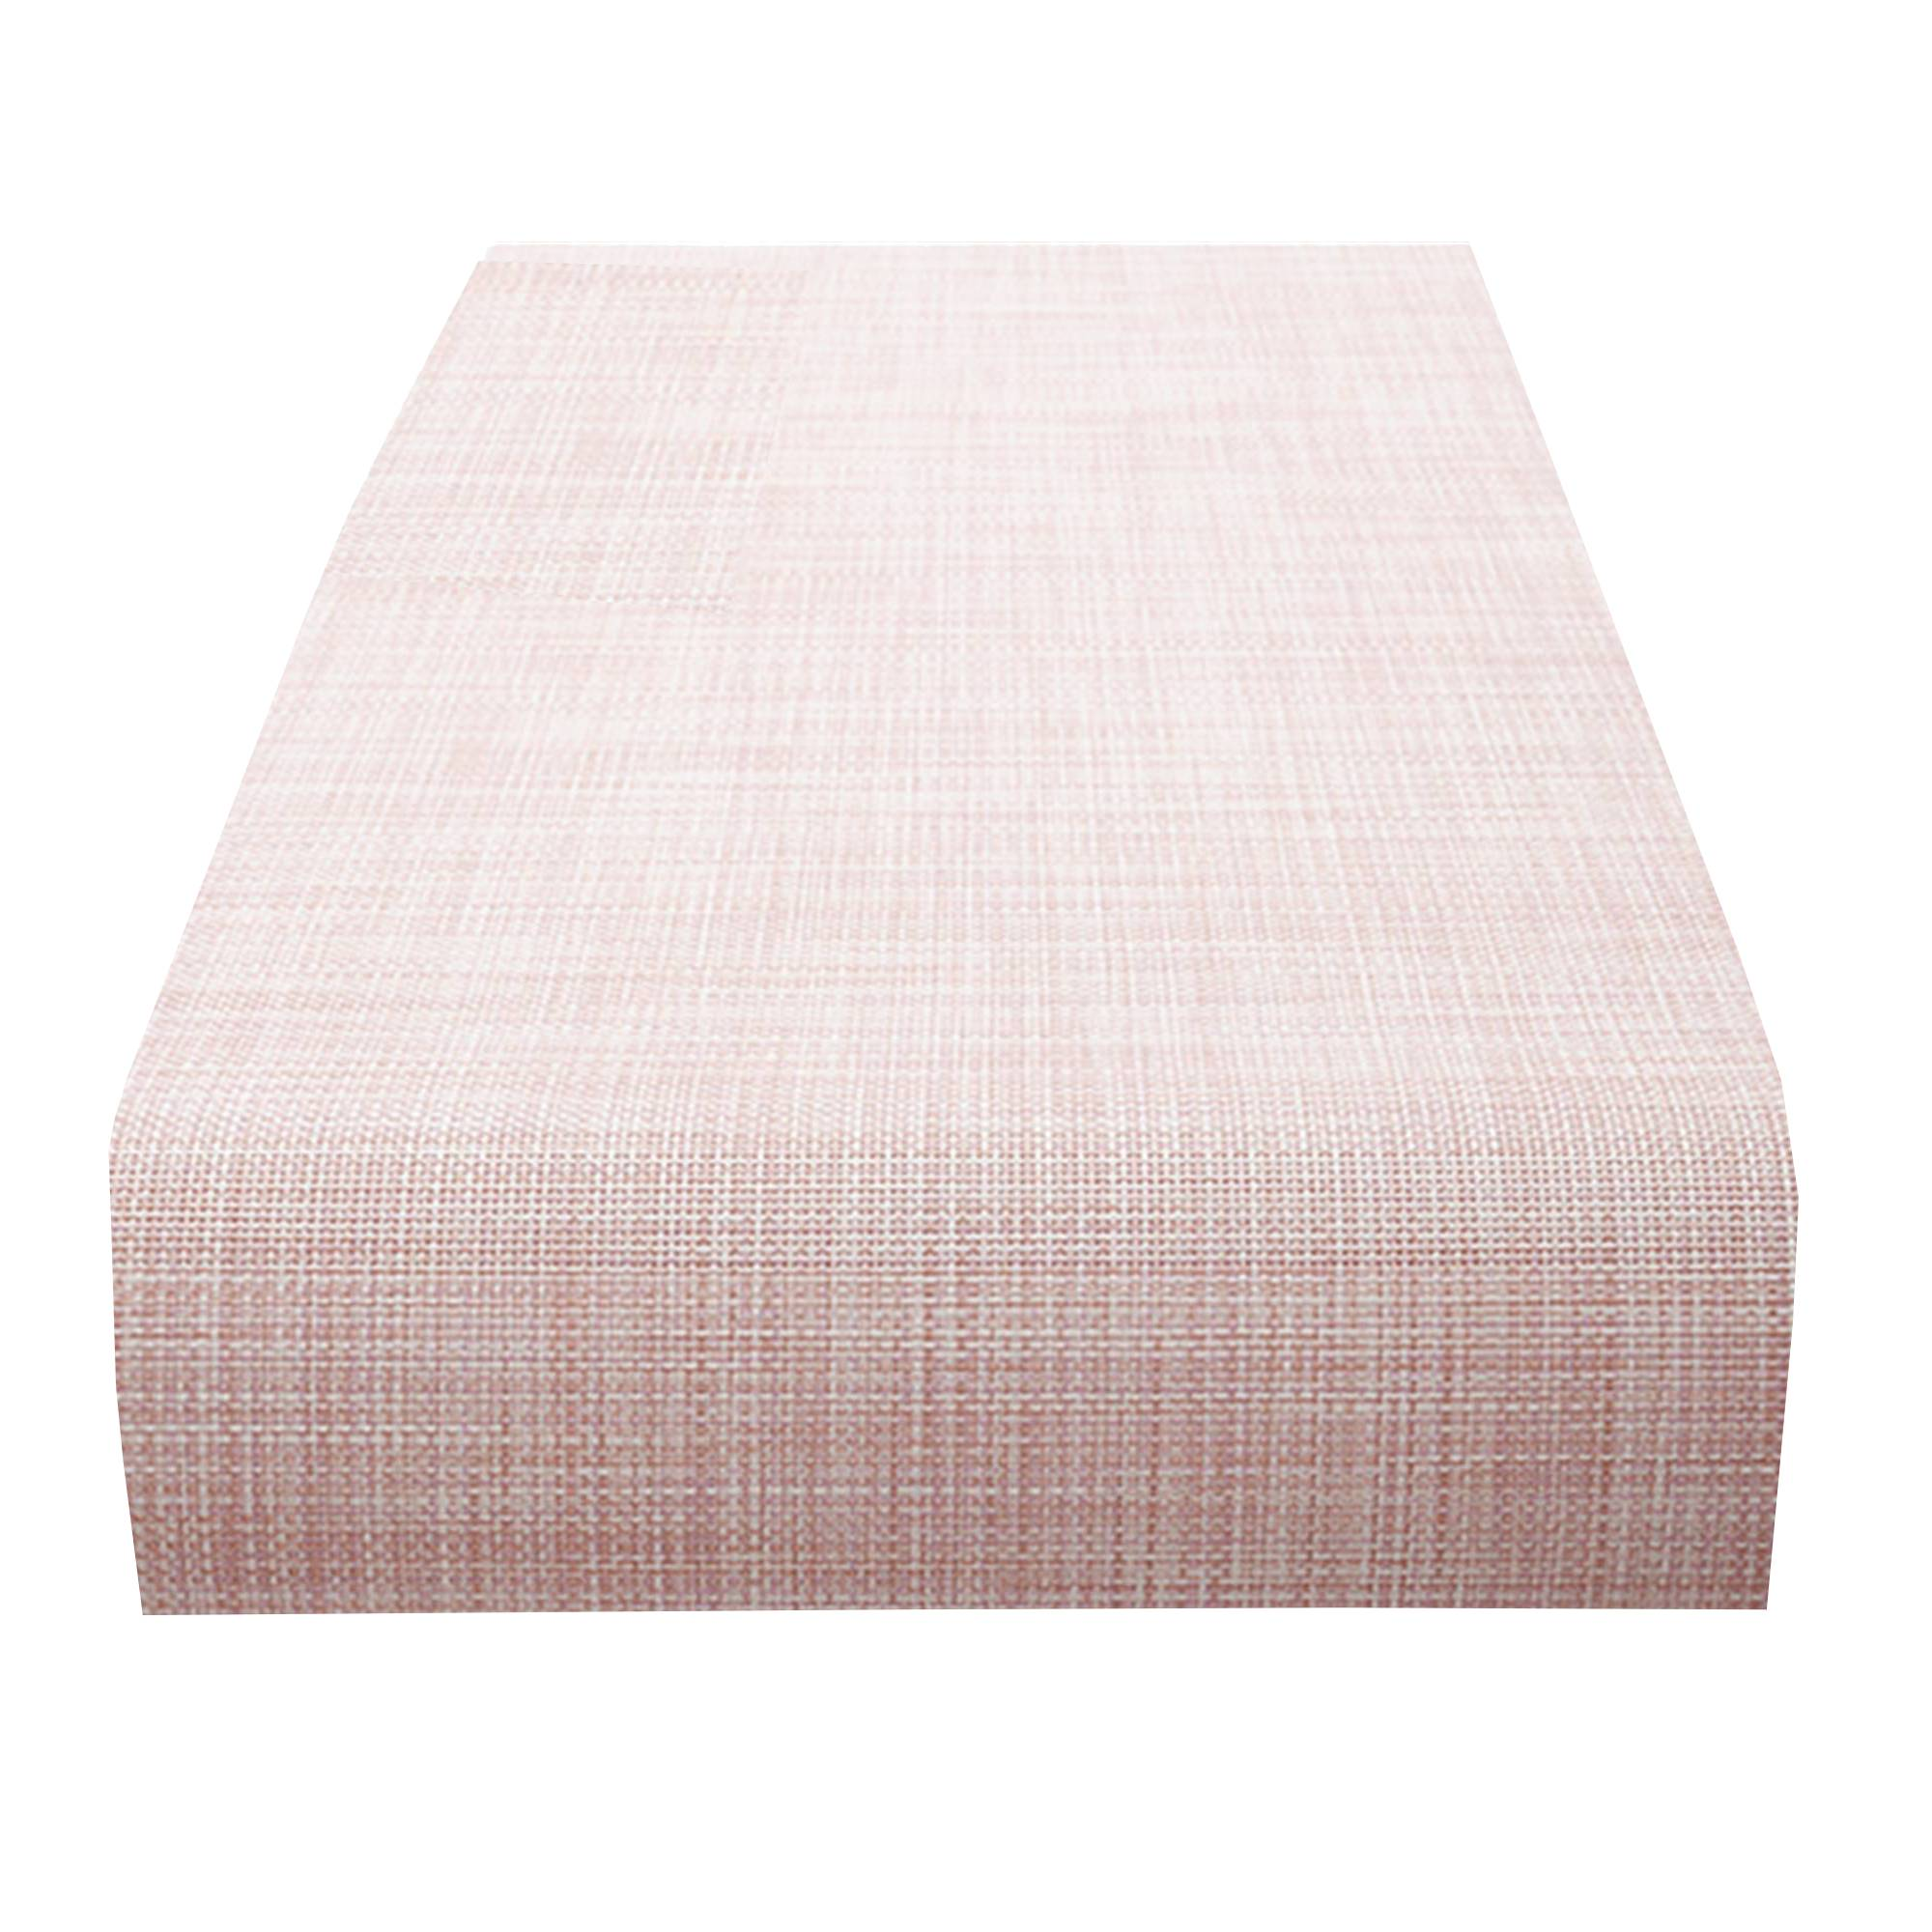 Mini Basketweave Table Runner: Blush